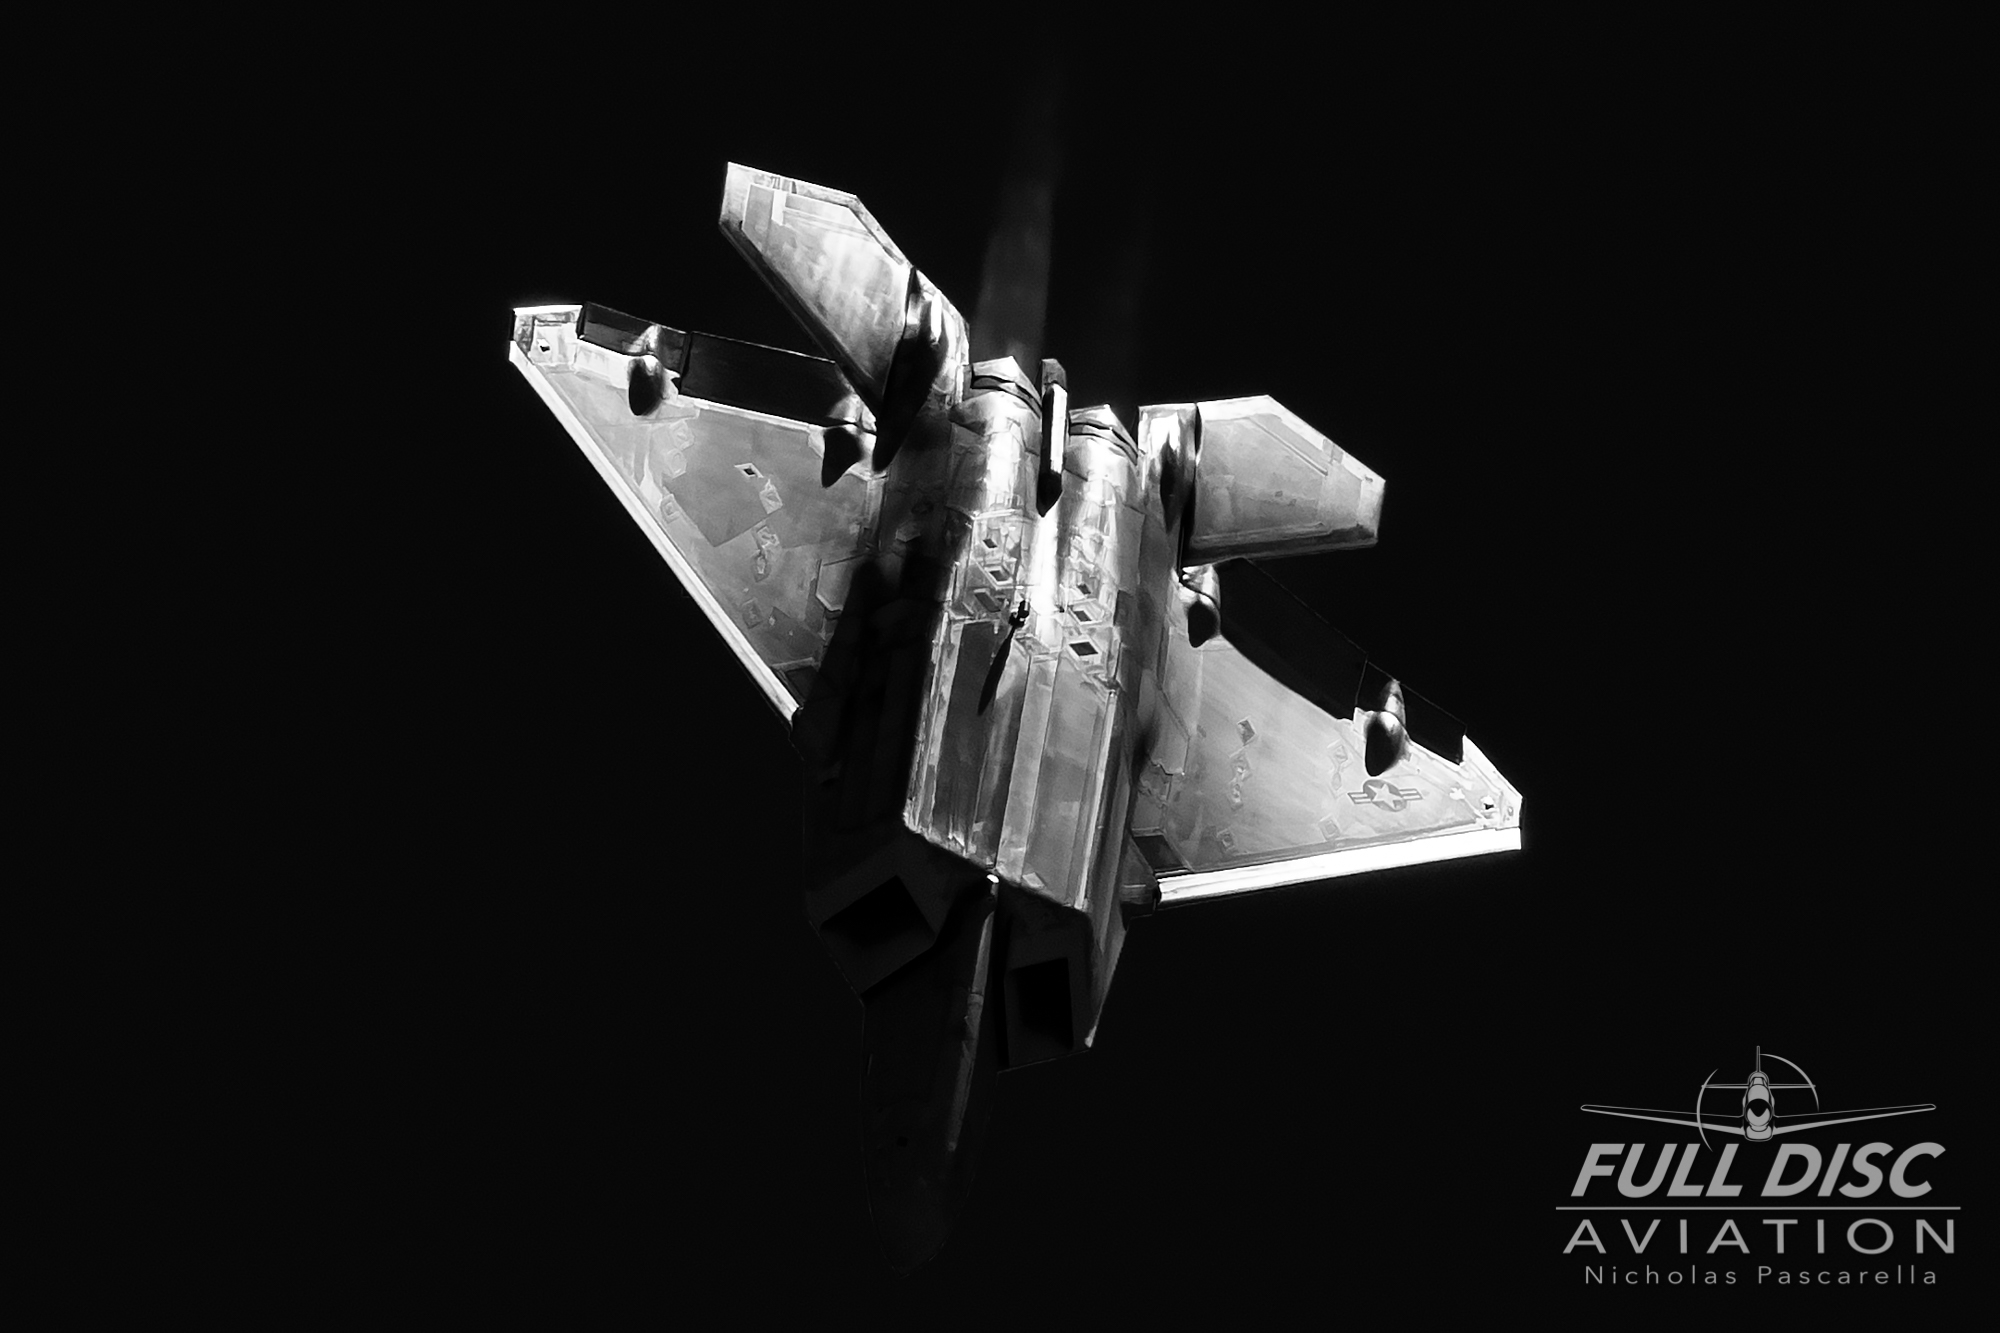 f22_highcontrast_blackandwhite_diving_fulldiscaviation_nickpascarella.jpg